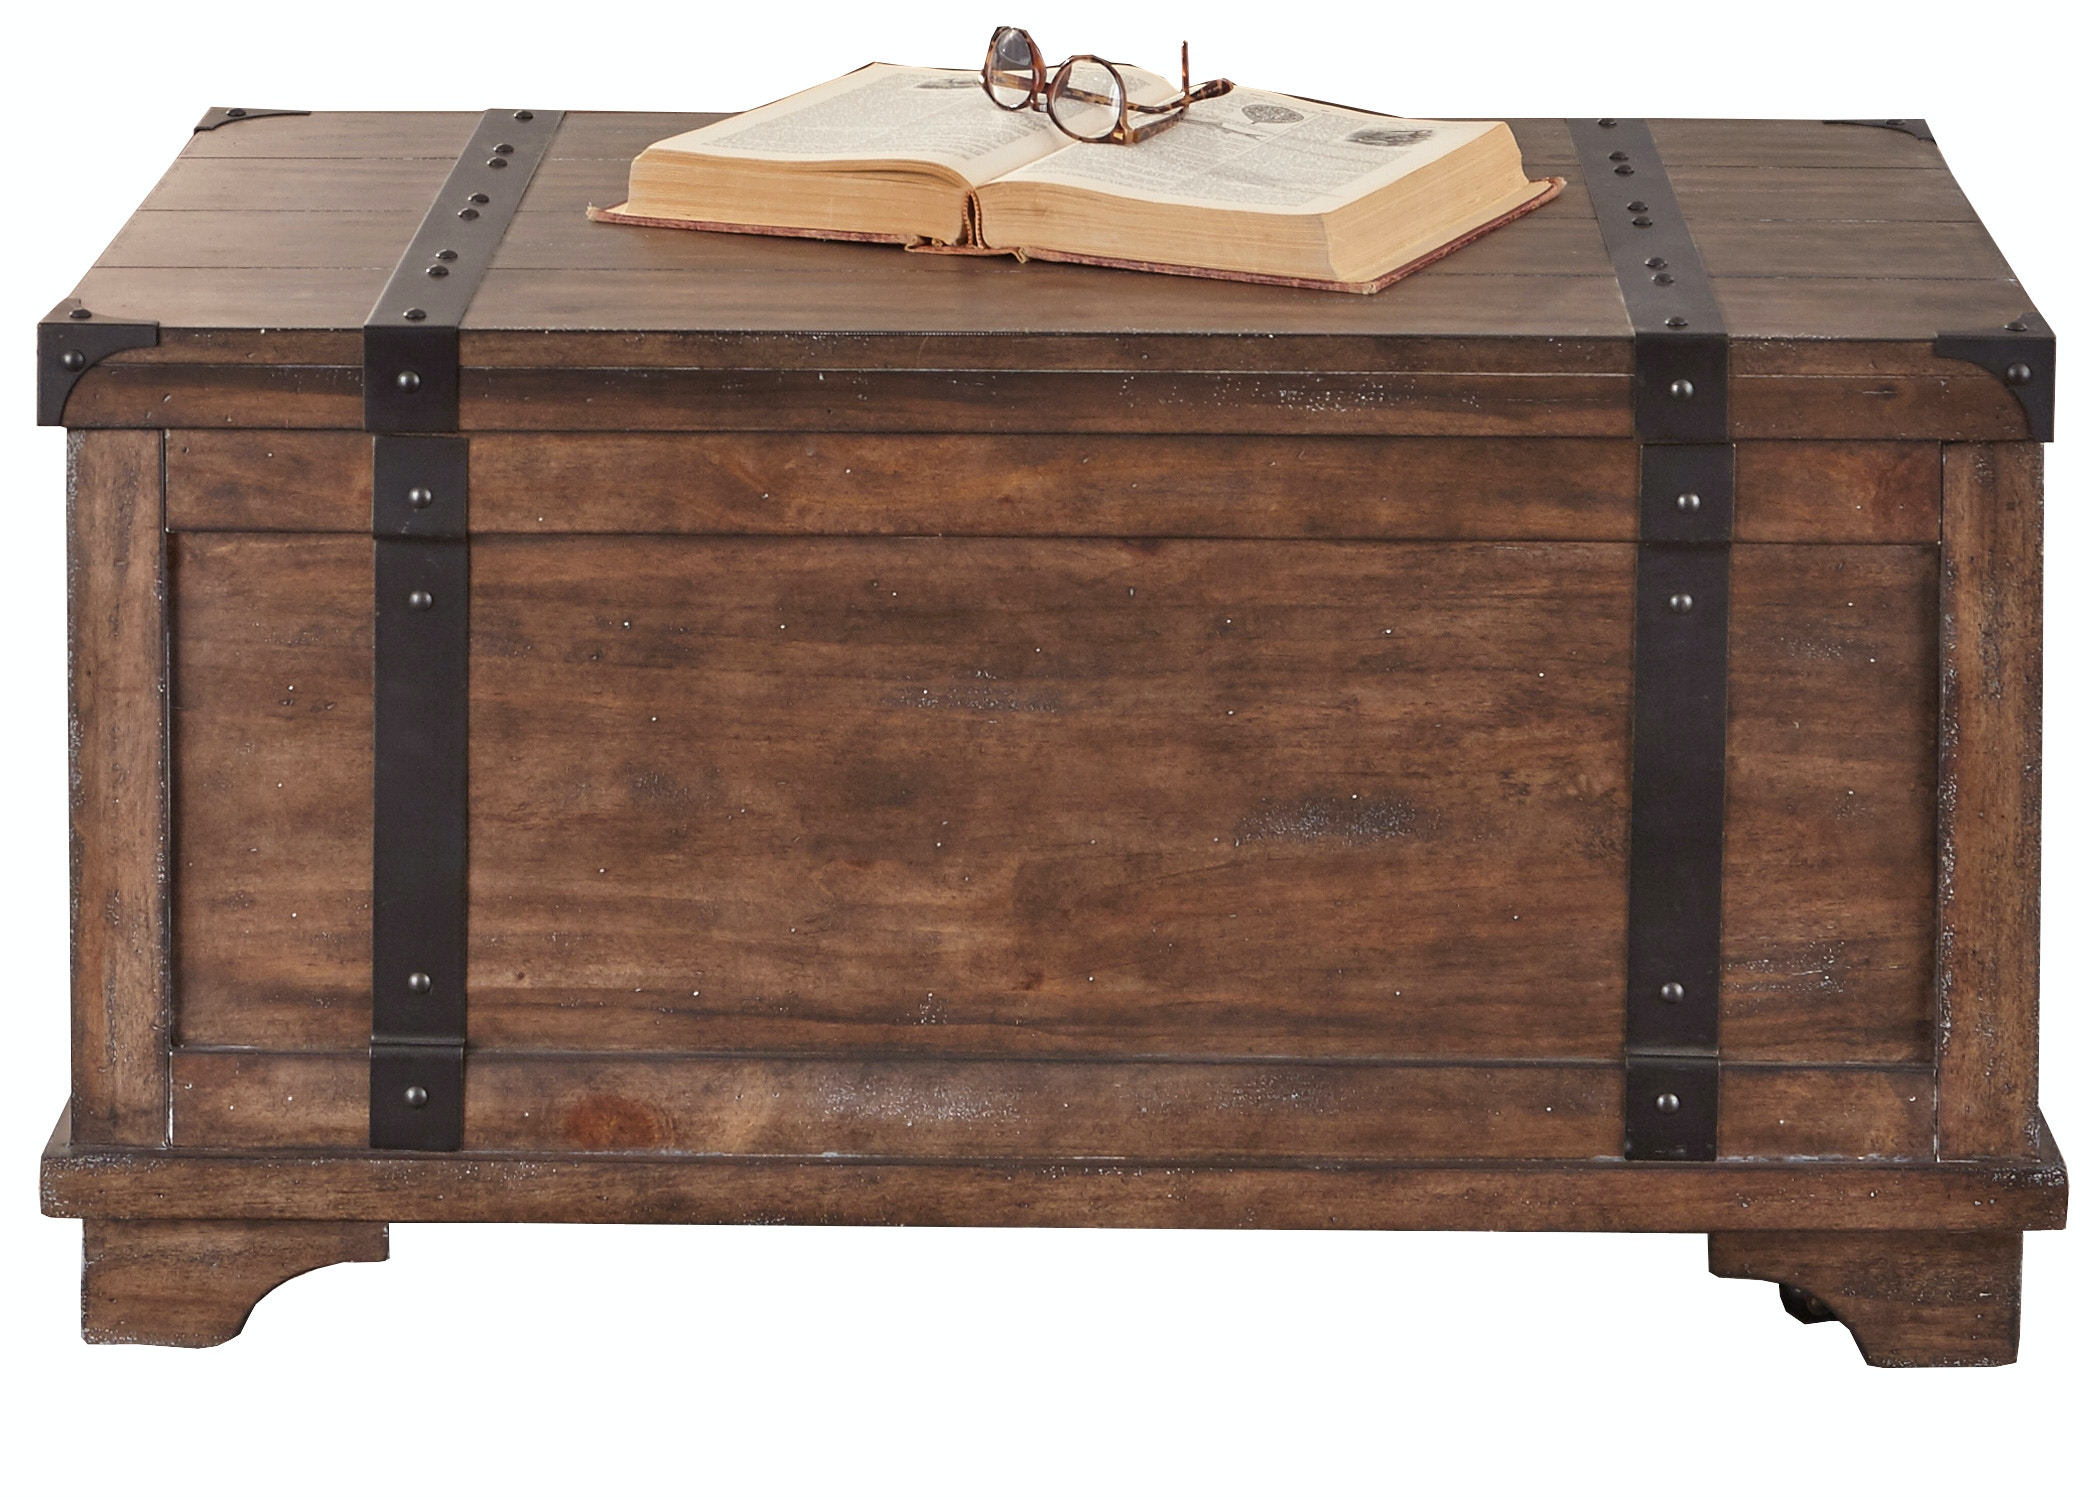 trunk table furniture. Passages Trunk Coffee Table ST:503221 Trunk Table Furniture